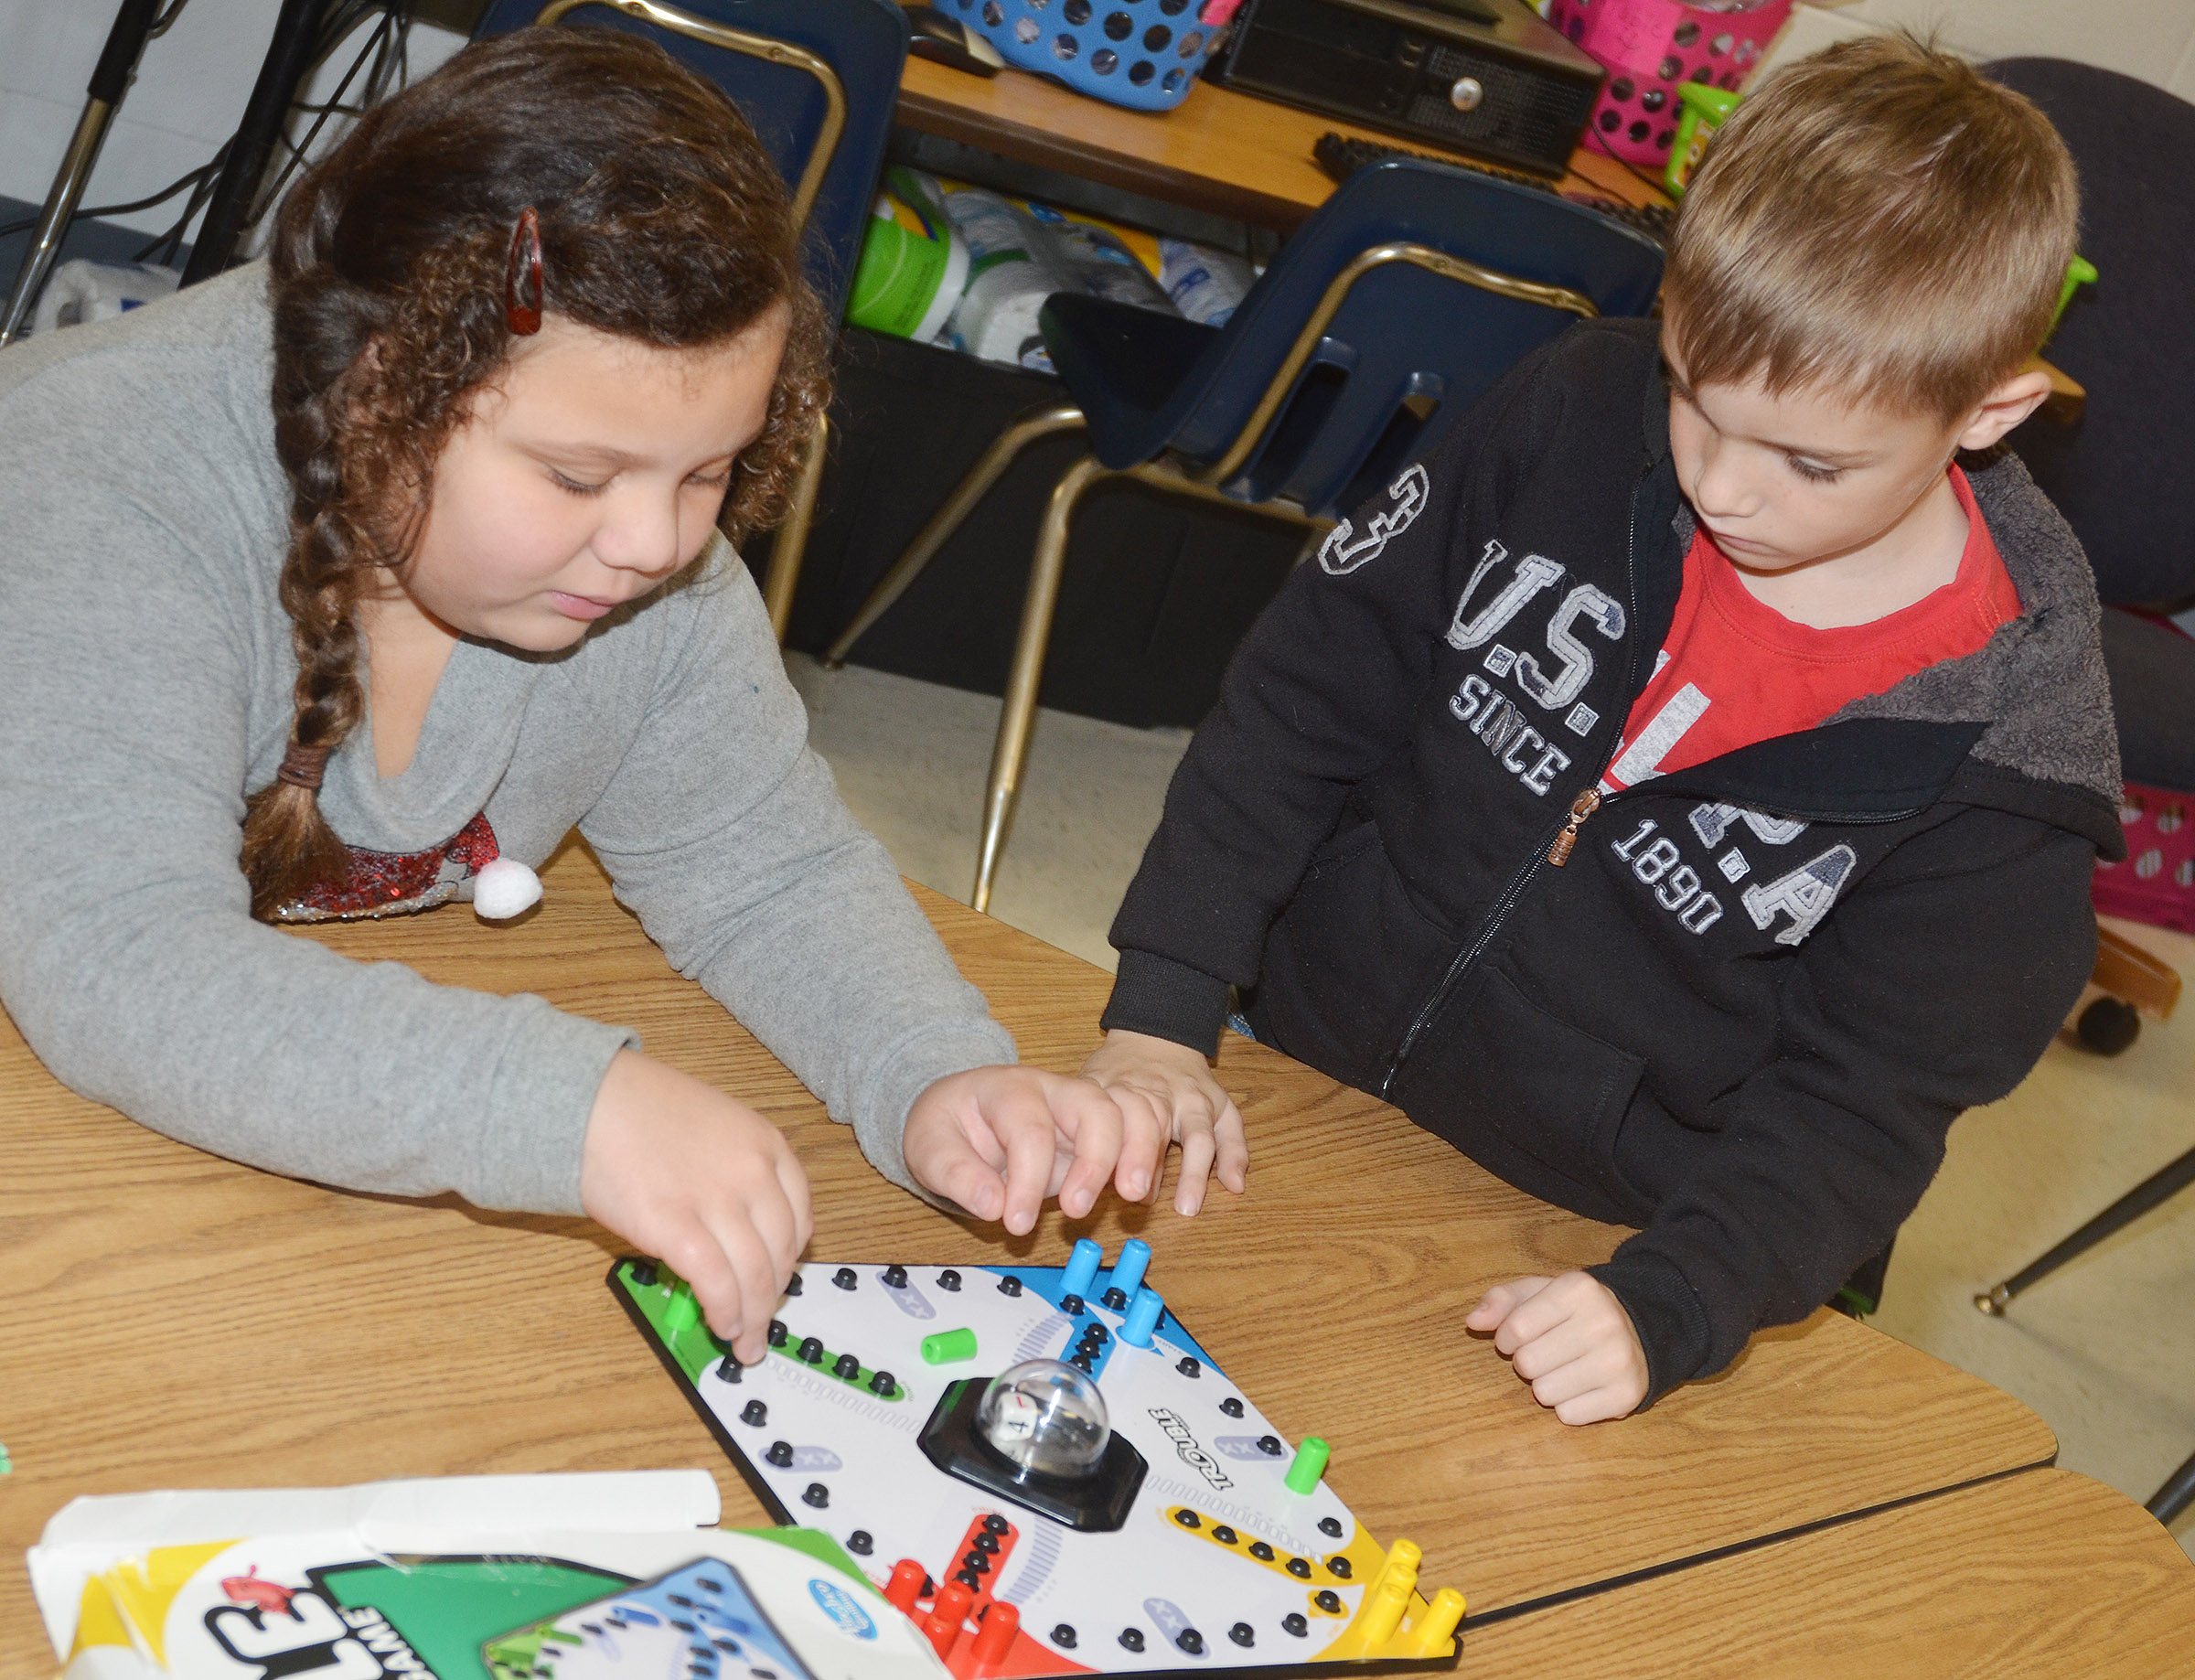 CES second-graders Amylah Taylor, at left, and Ben Lord play Trouble.